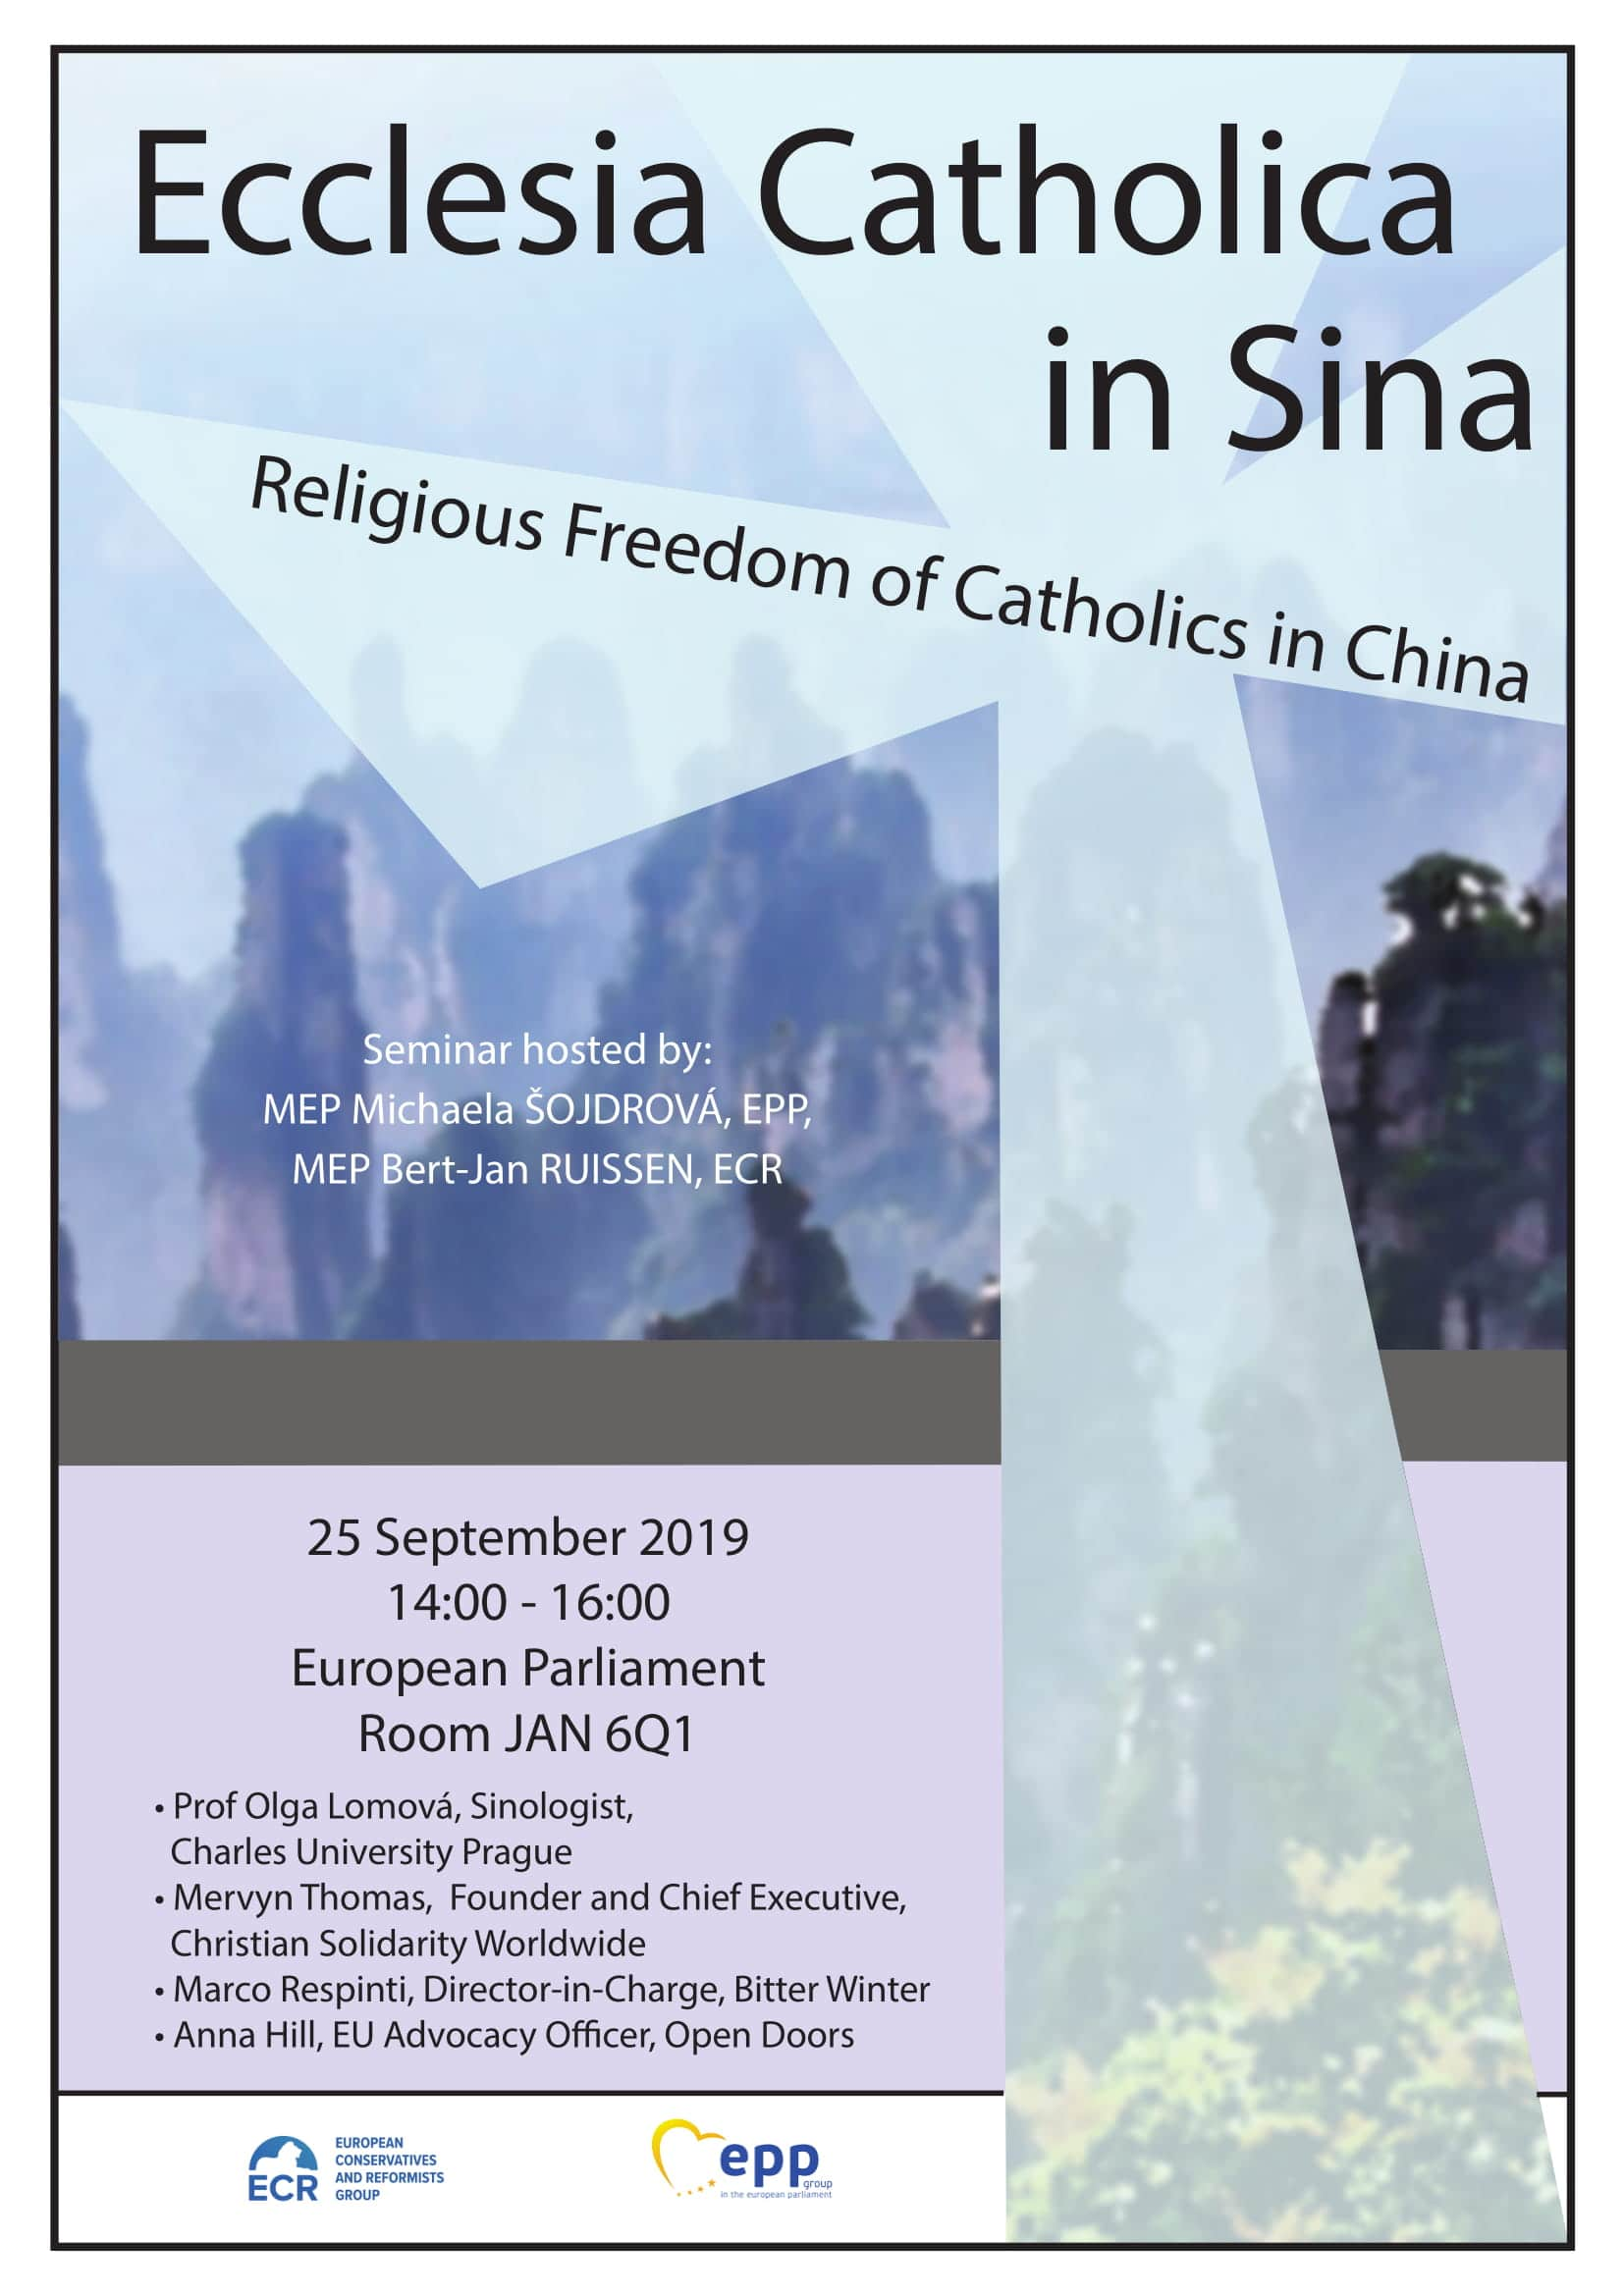 Ecclesia Catholica in Sina, Bruxelles, Sept. 25, 2019-1